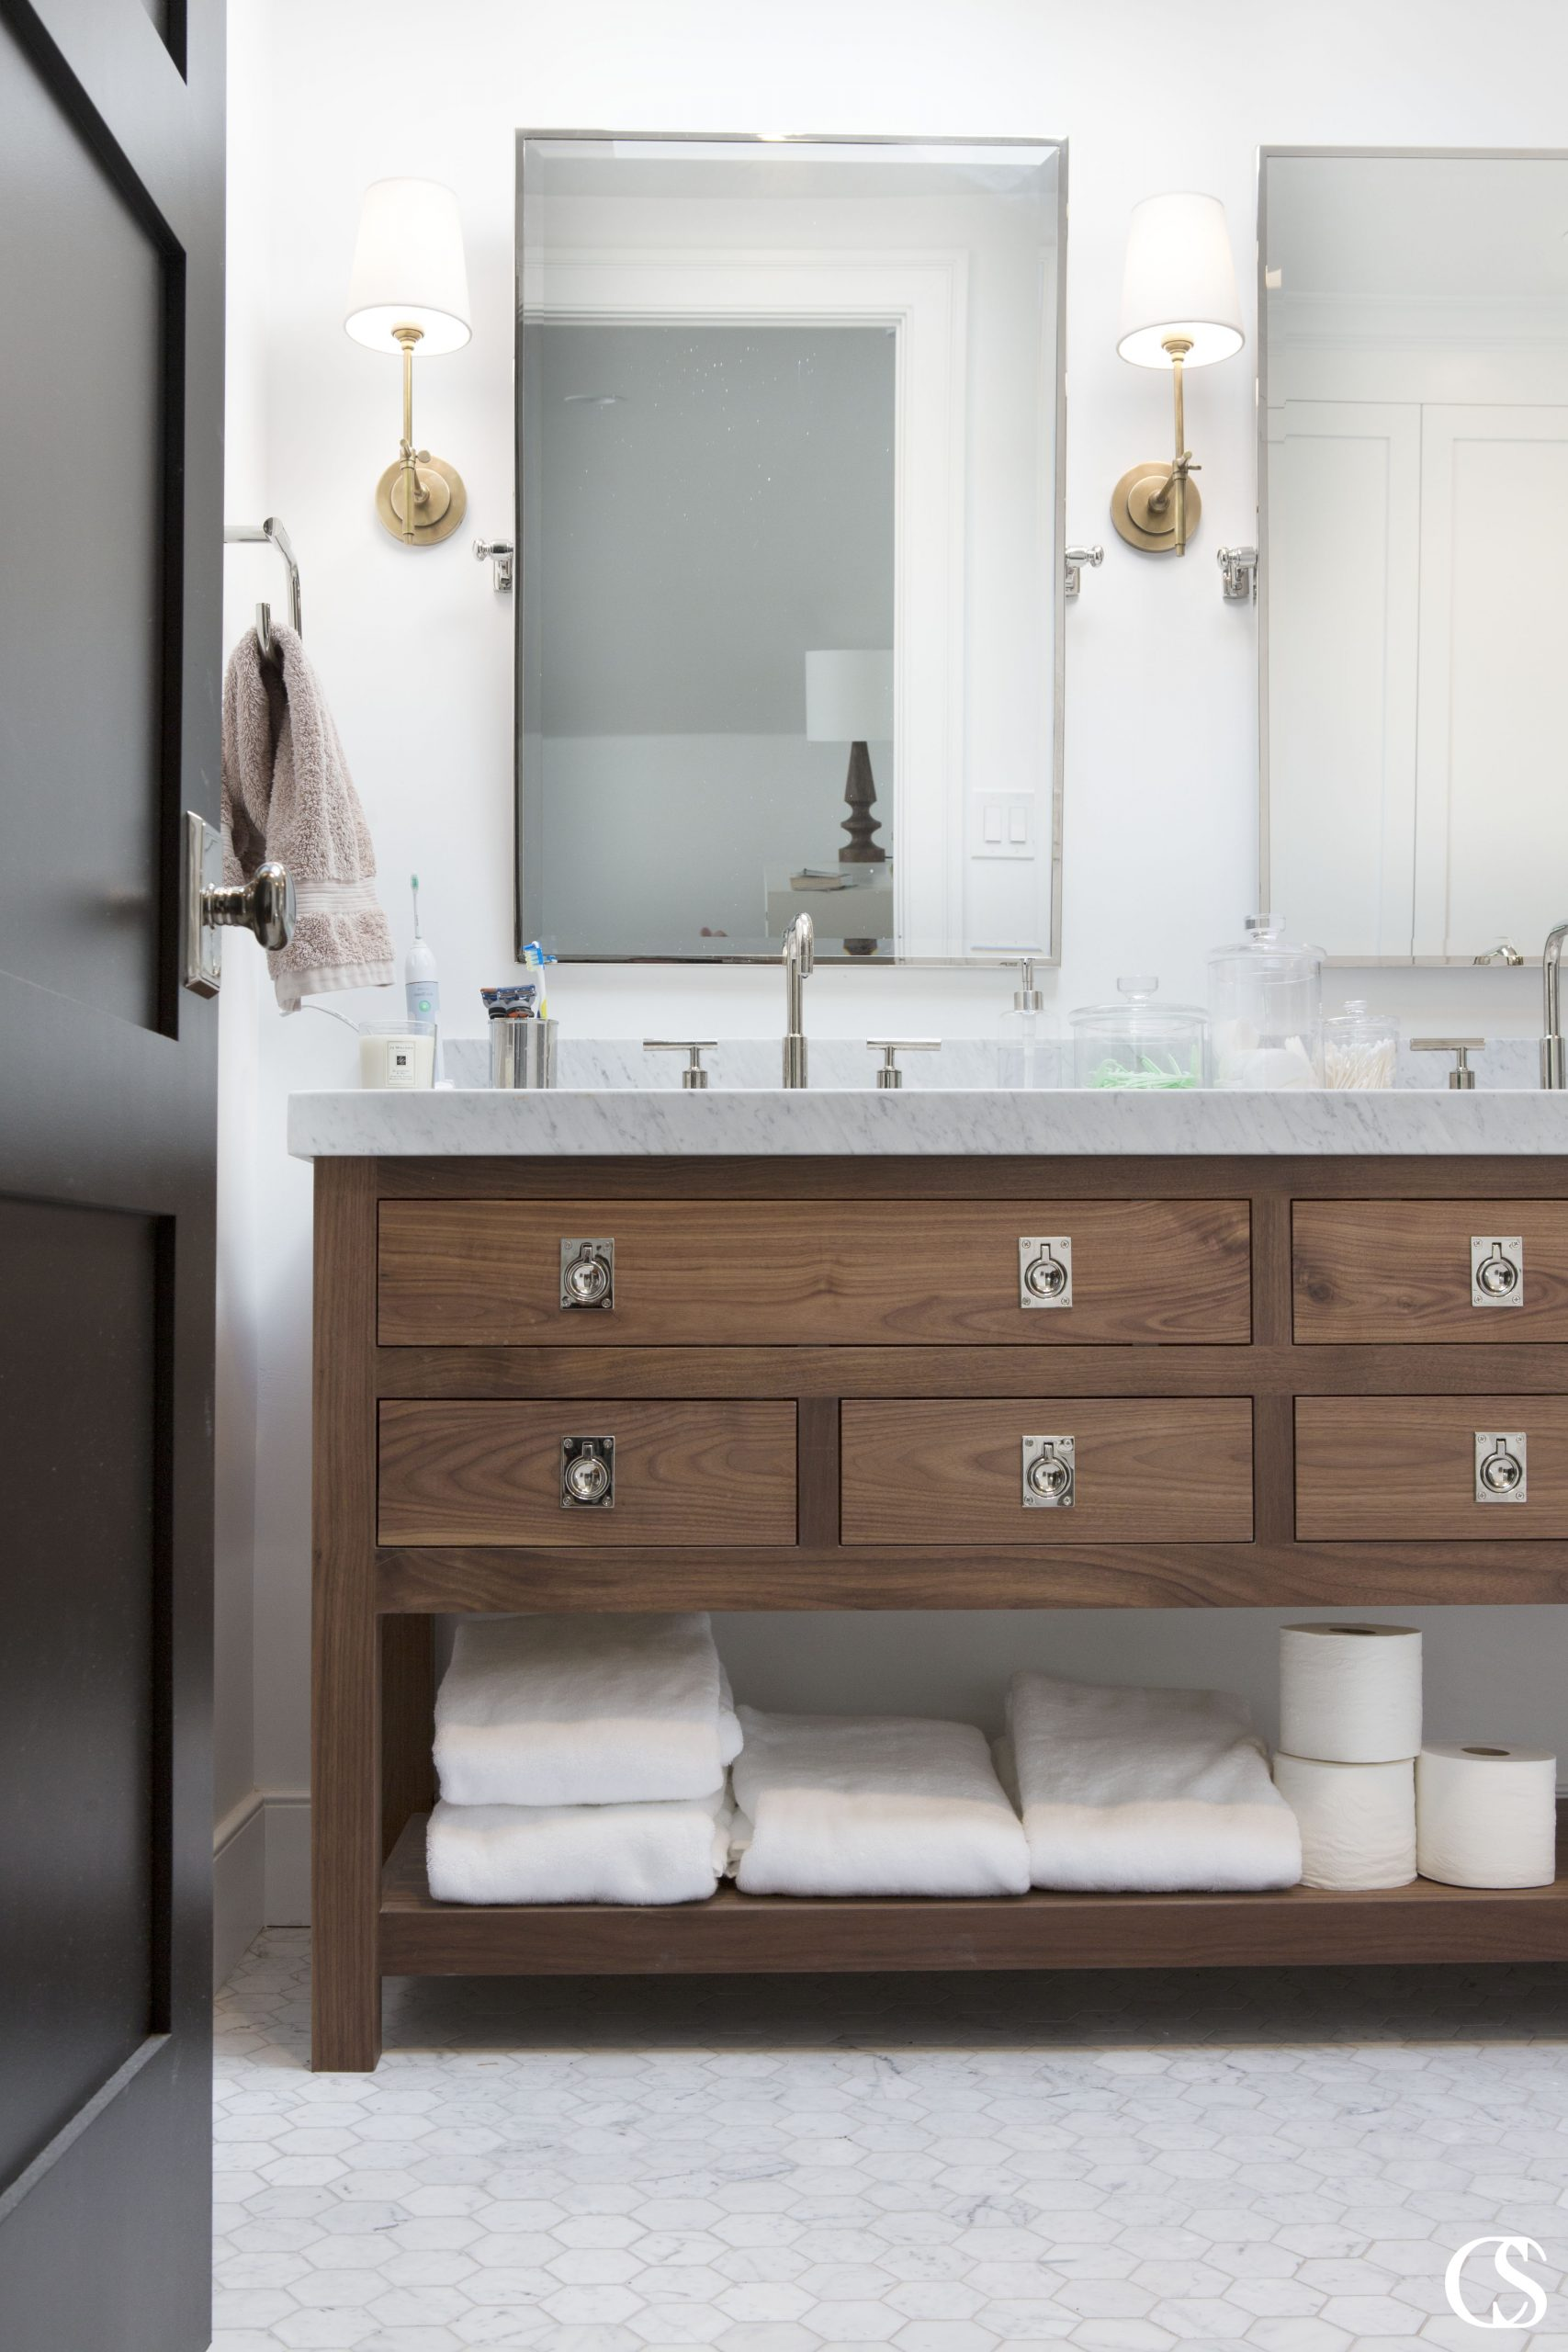 Slab front drawers, distinctive hardware, clean lines...what vanity dreams are made of! This unique custom bathroom cabinet pulls off a look completely different than most bathroom vanities—that's what working with professional cabinet designers will get you.